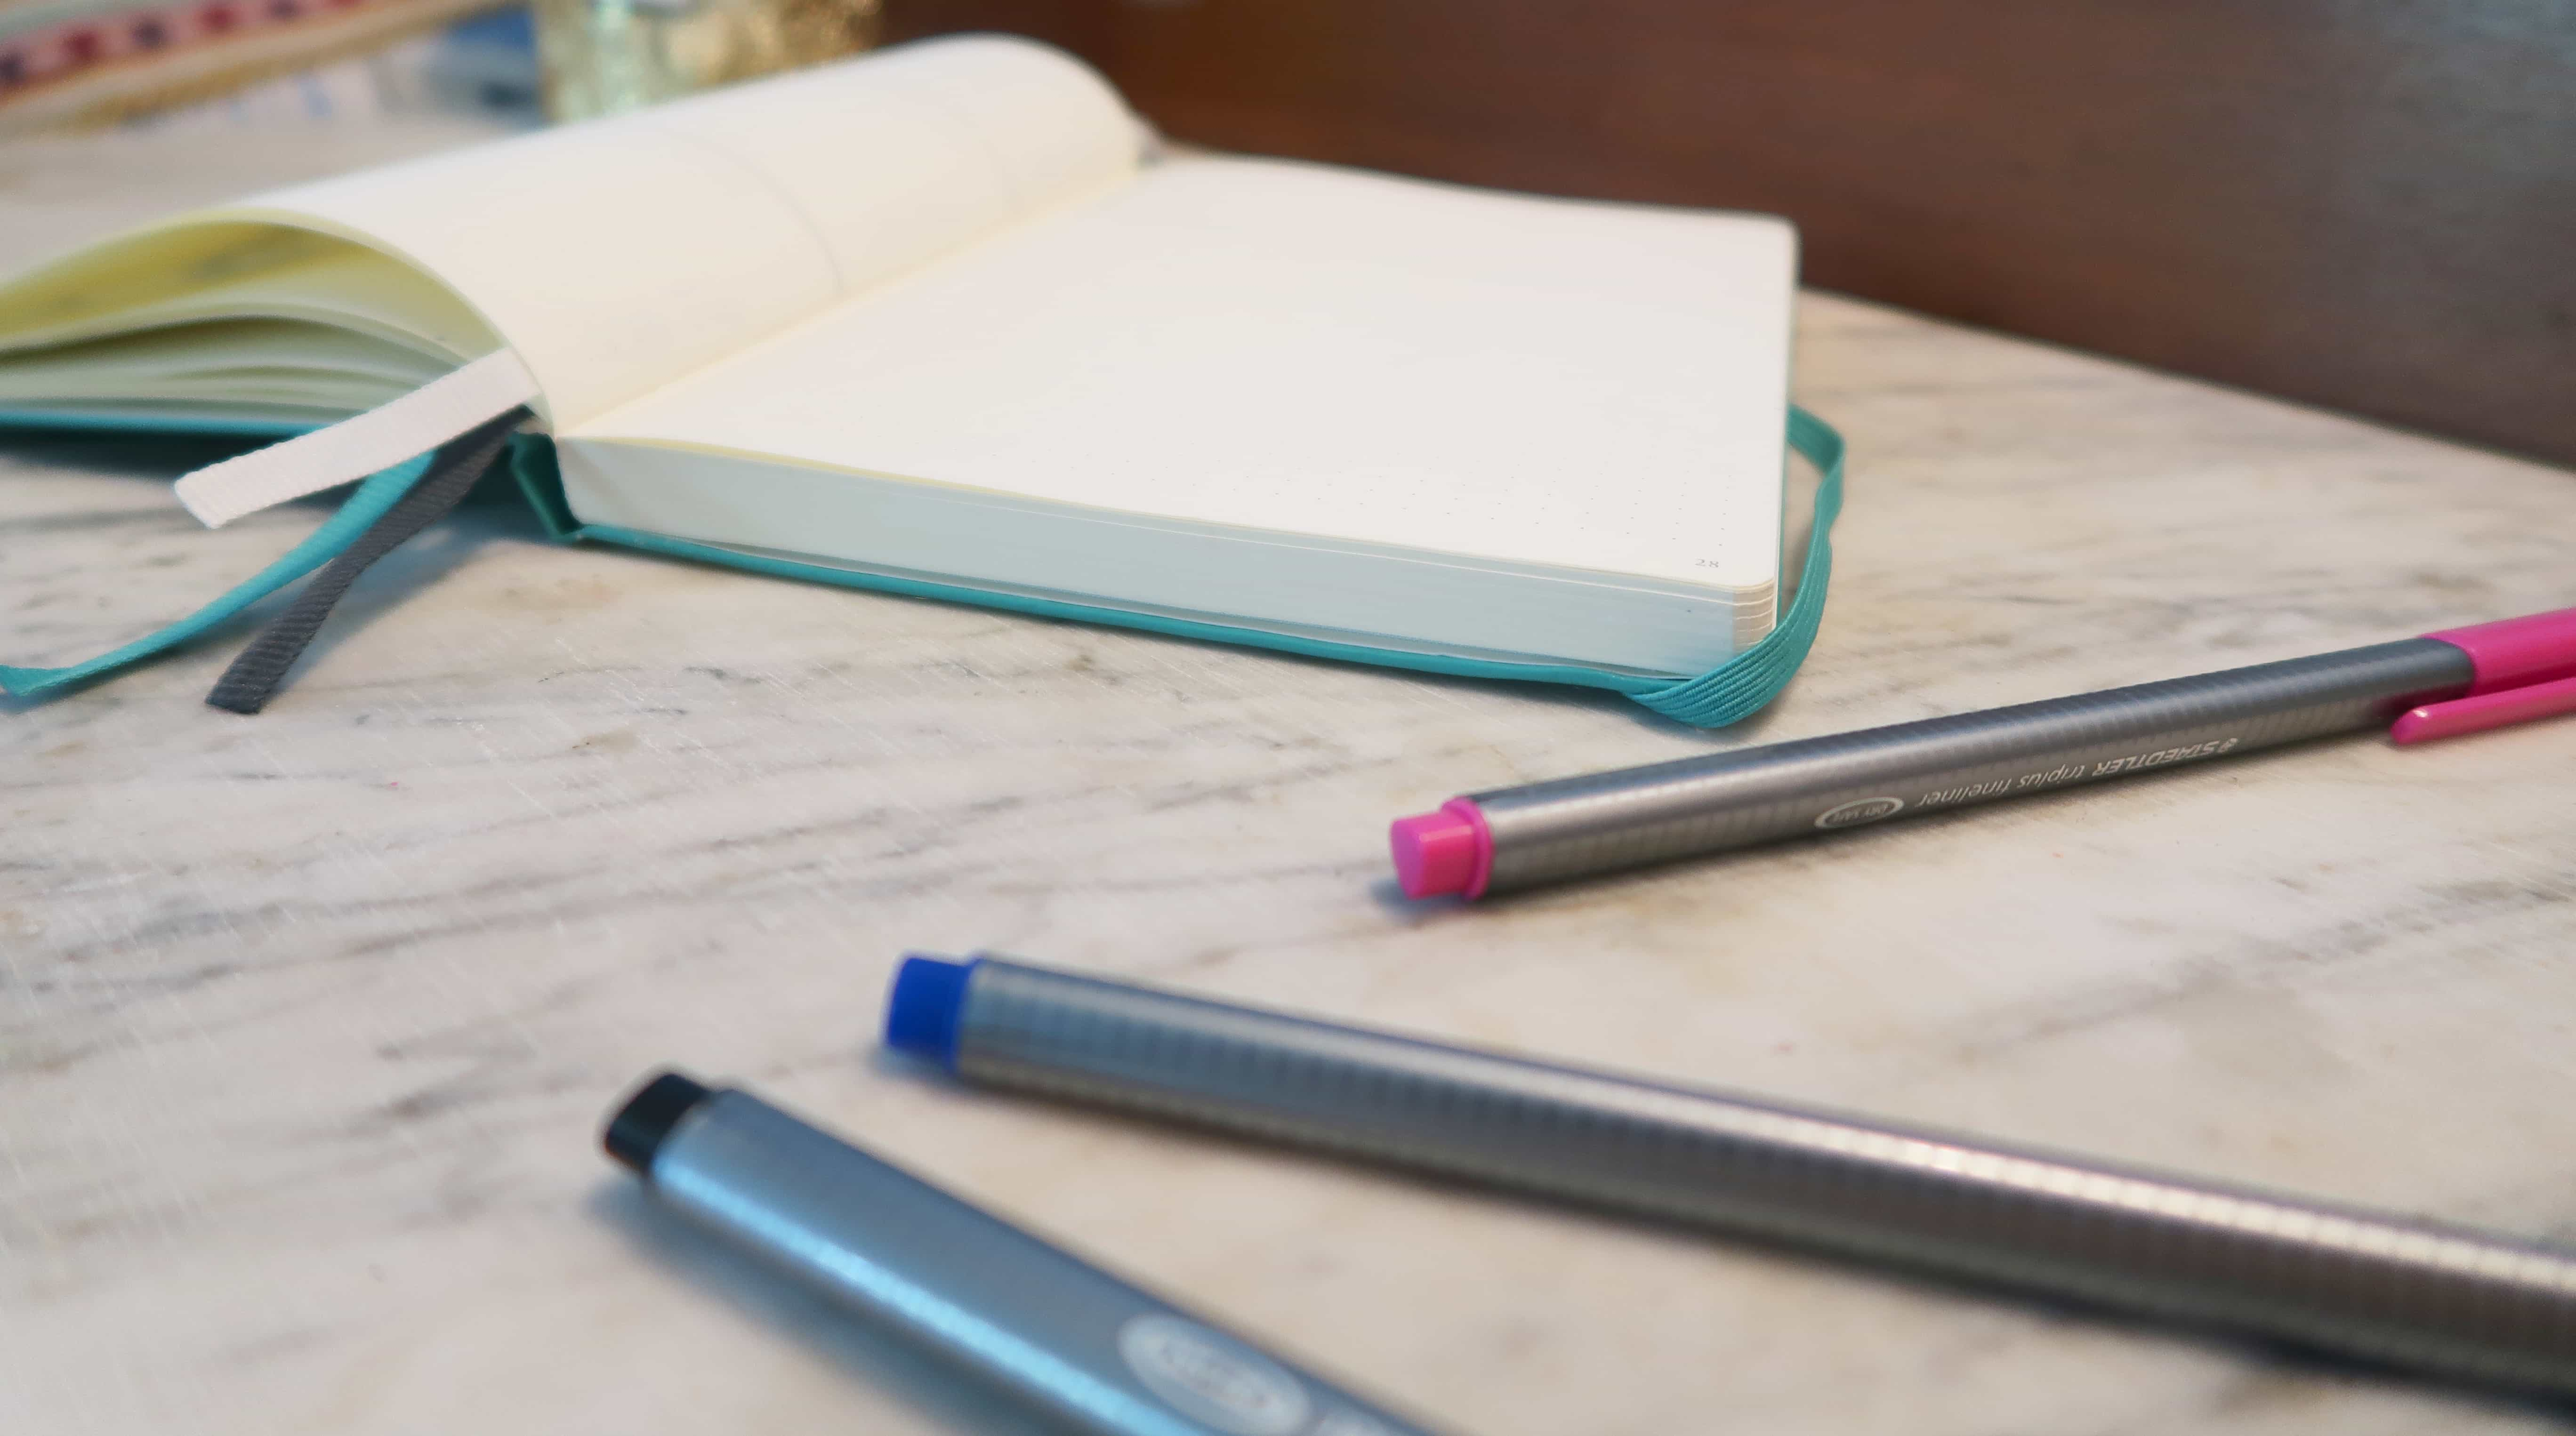 Why I'm Obsessed With My Bullet Journal